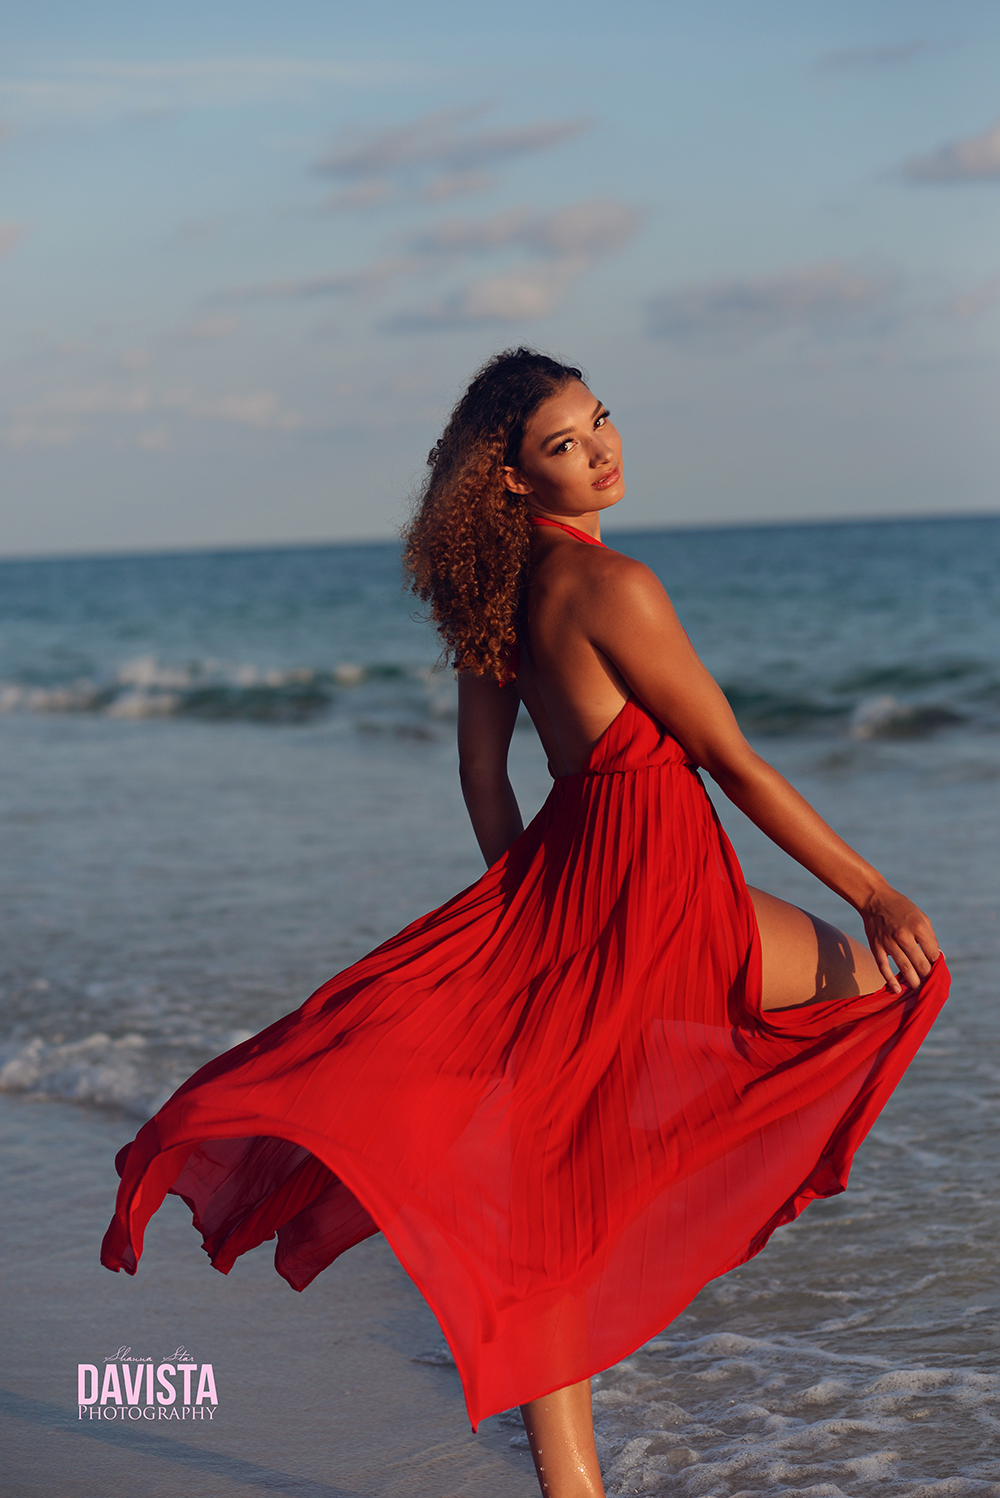 Panama City beach beauty portraits